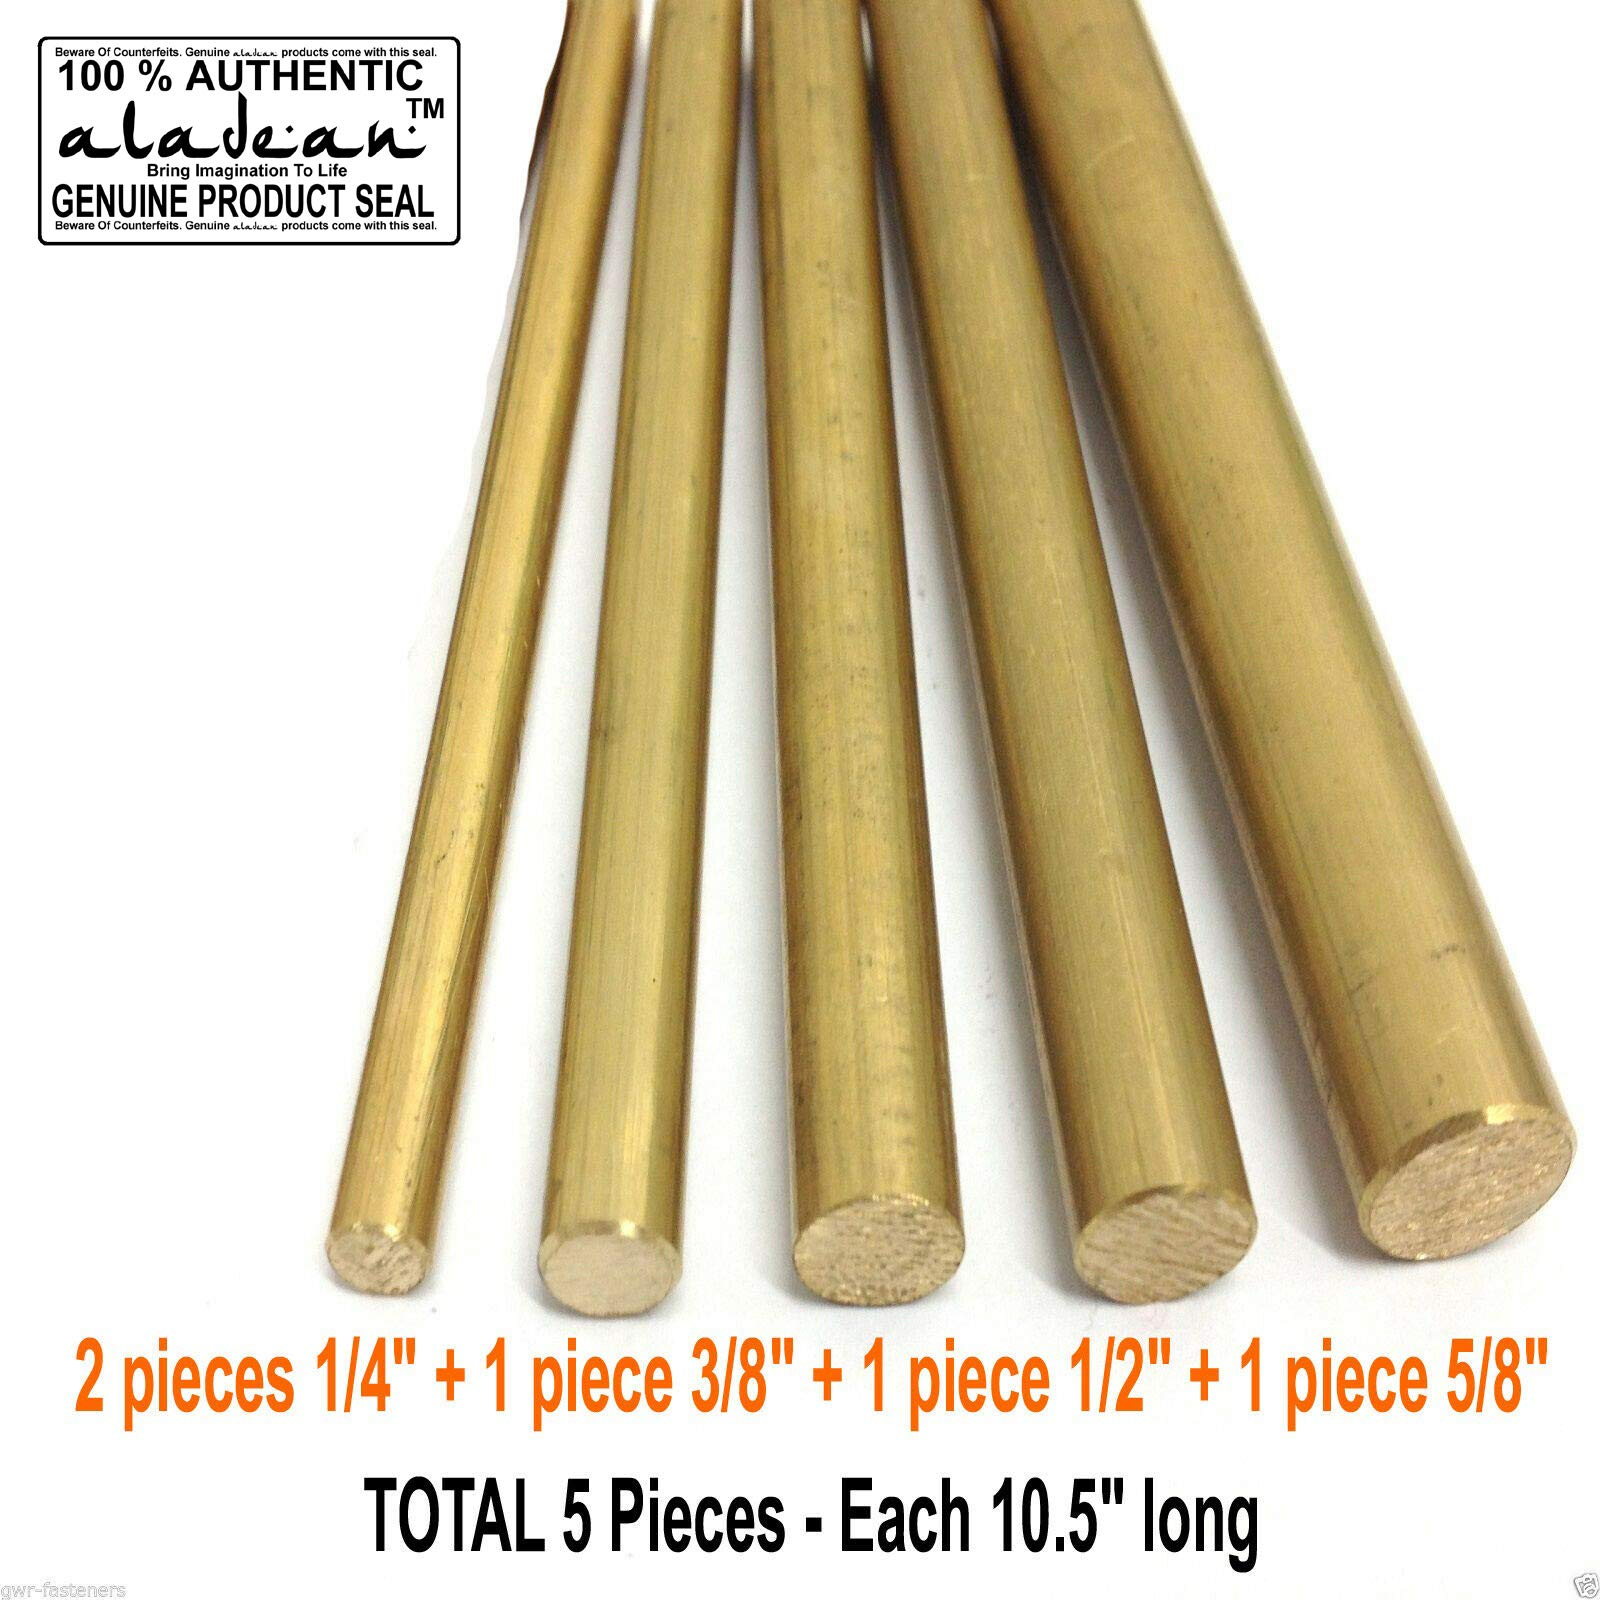 Solid Brass Round Rod 5/8'', 1/2'', 3/8'', 2X 1/4'' Set of 5 bars10.5 inch Long Lathe Machine Milling Drilling Rivet Knife Craft by Aladean